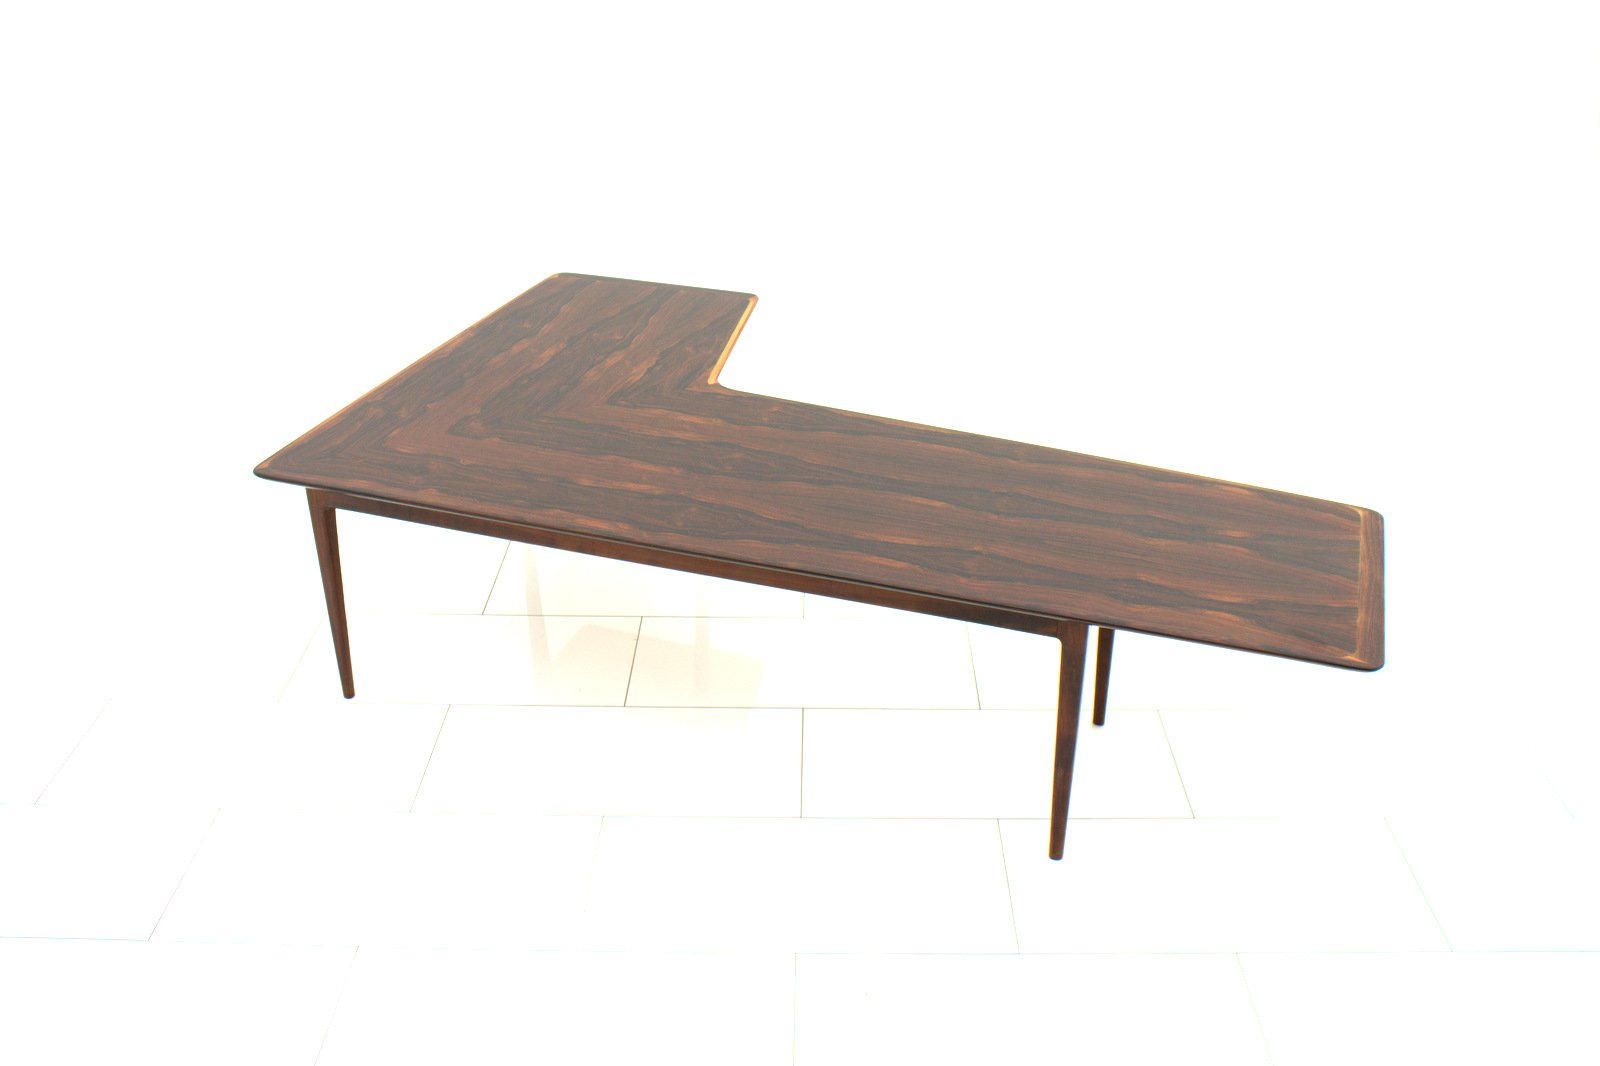 Great L Shaped Rosewood Coffee Table, 1960s 6. Price: $3,389.00 Regular Price:  $3,922.00